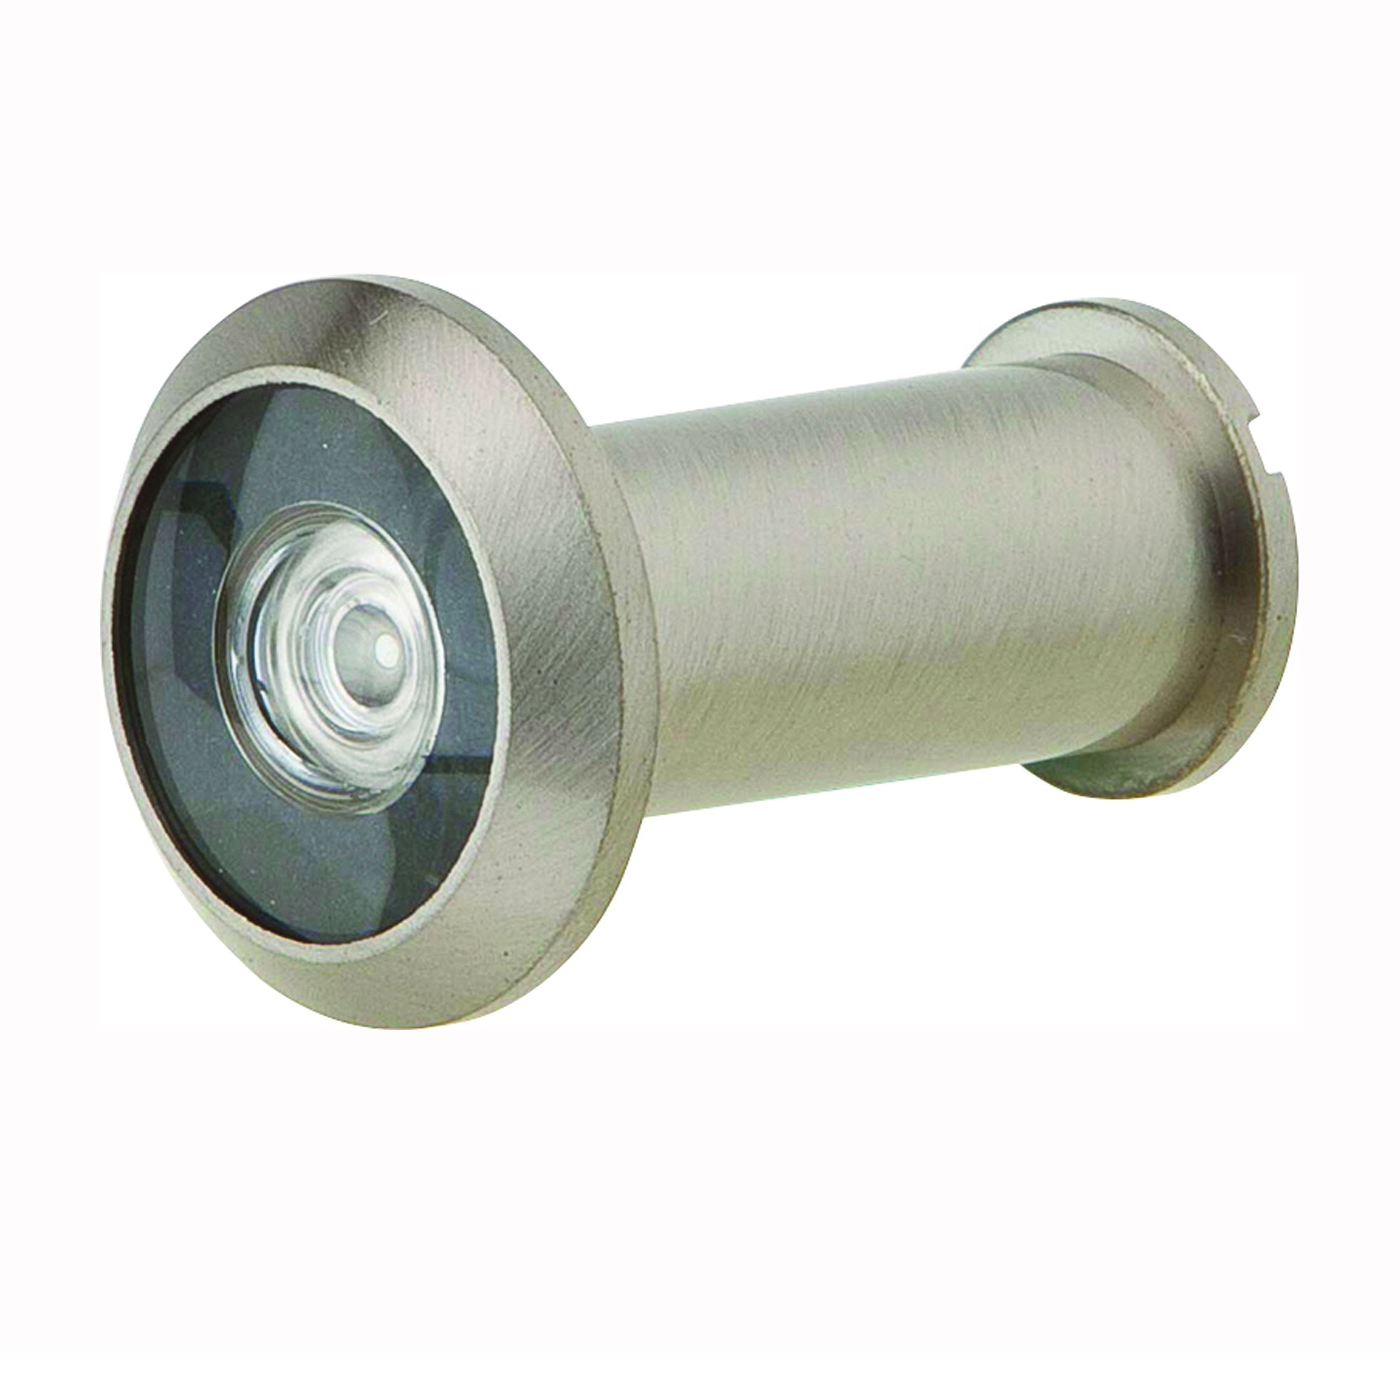 Picture of Schlage SC698P-B619 Wide Angle Viewer, 190 deg Viewing, 1-3/8 to 2-1/8 in Thick Door, Solid Brass, Satin